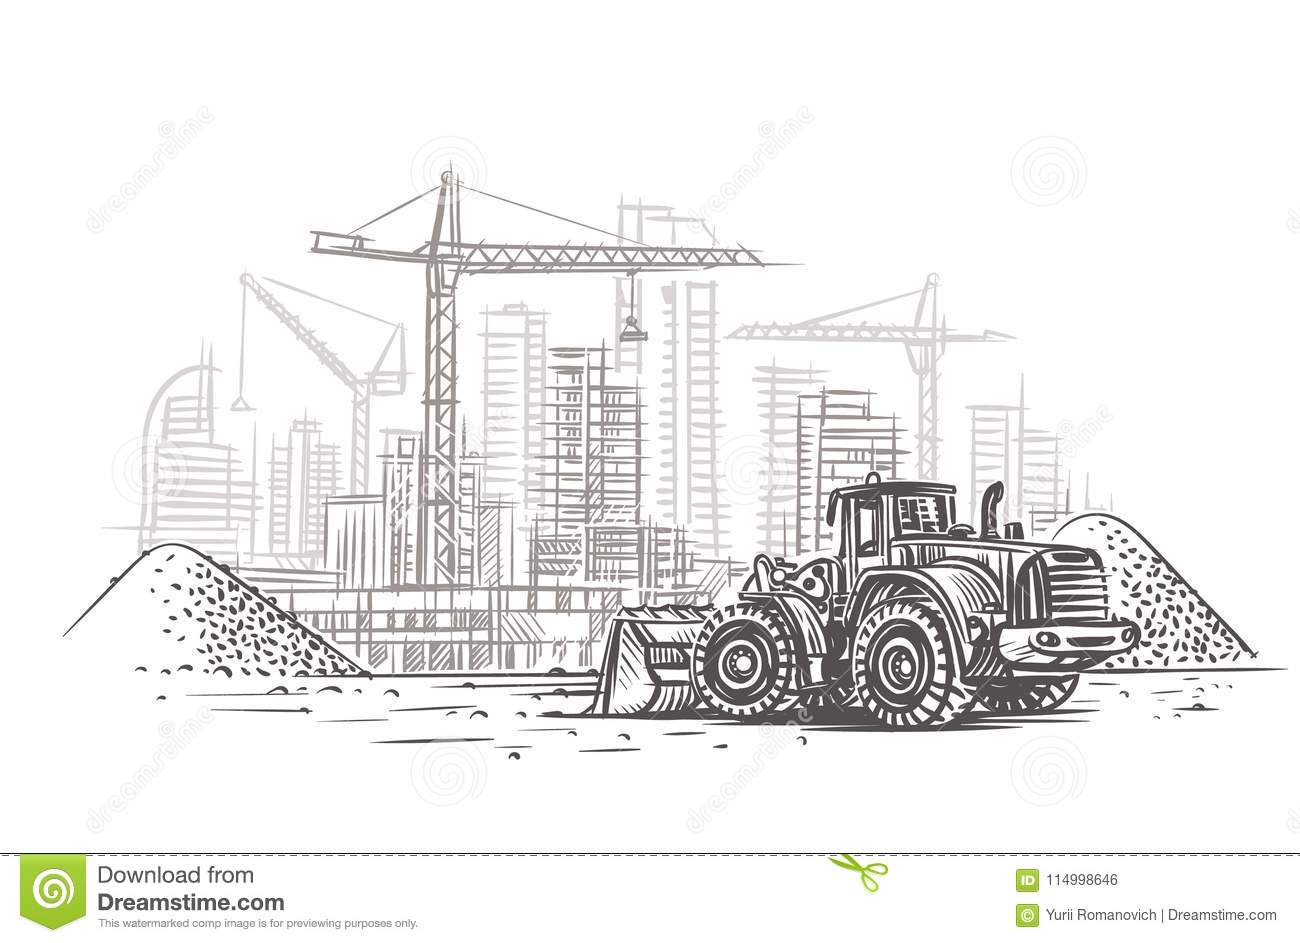 Dozer On Construction Site Sketch Vector Layered Stock Vector